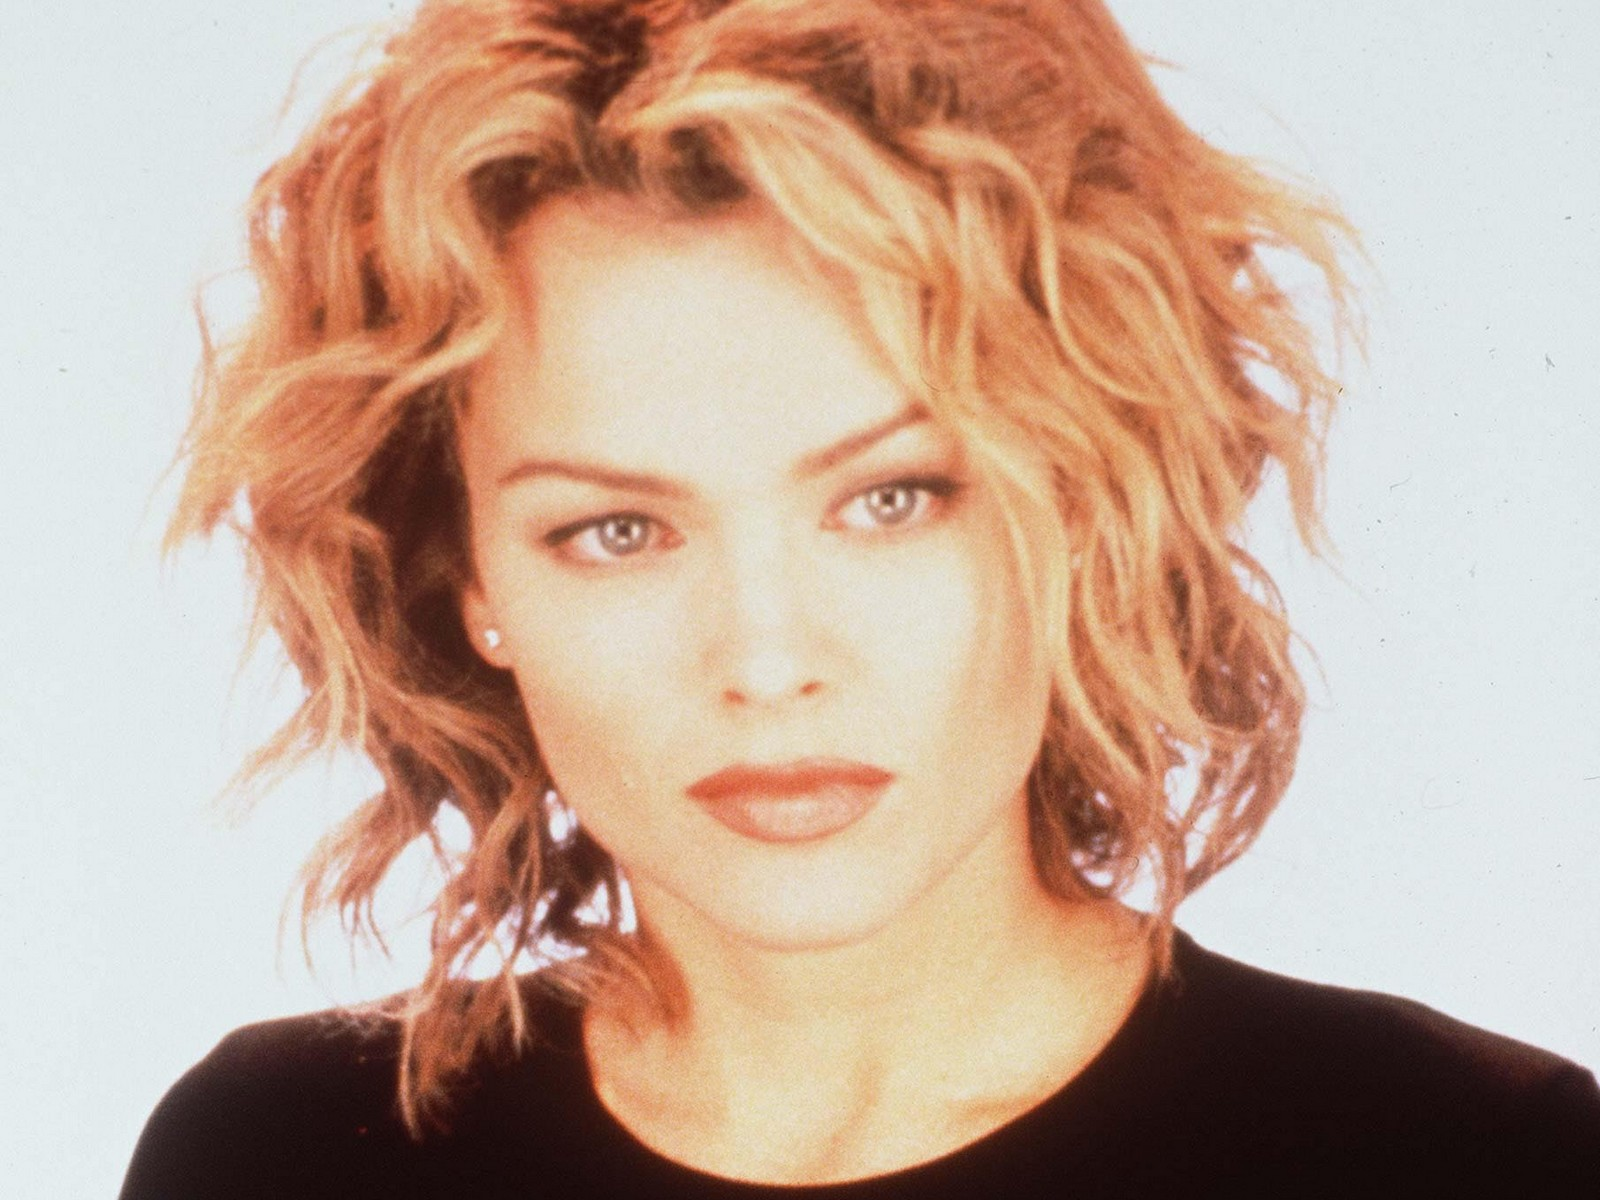 dina meyer who dated who